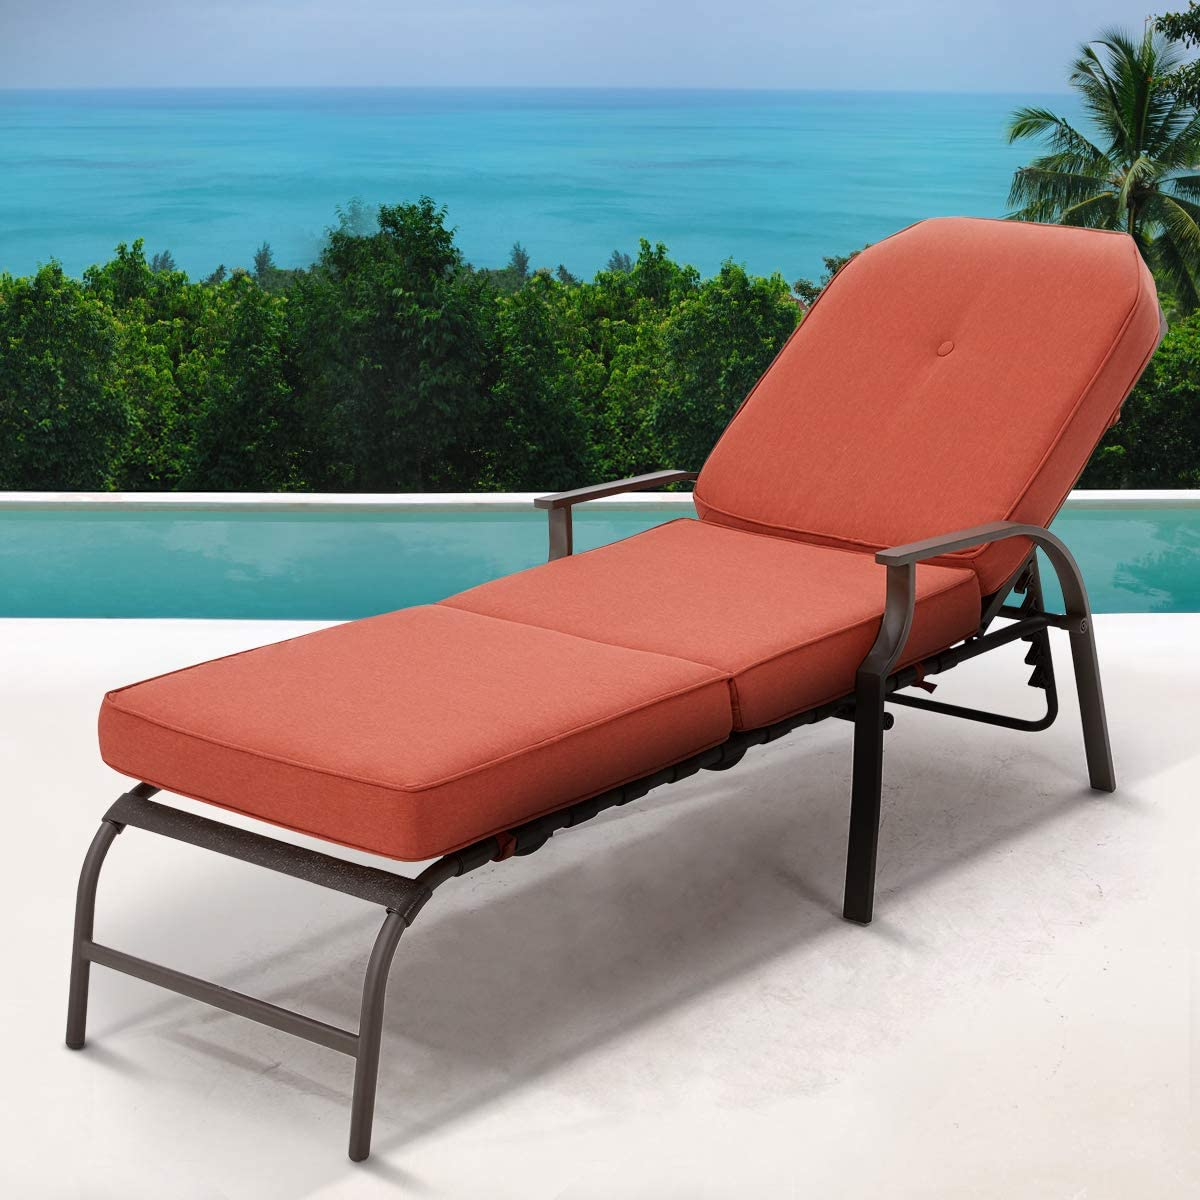 U-MAX Adjustable Outdoor Chaise Lounge Chair Patio Lounge Chair Recliner Furniture with Armrest and Cushion for Deck, Poolside, Backyard Orange